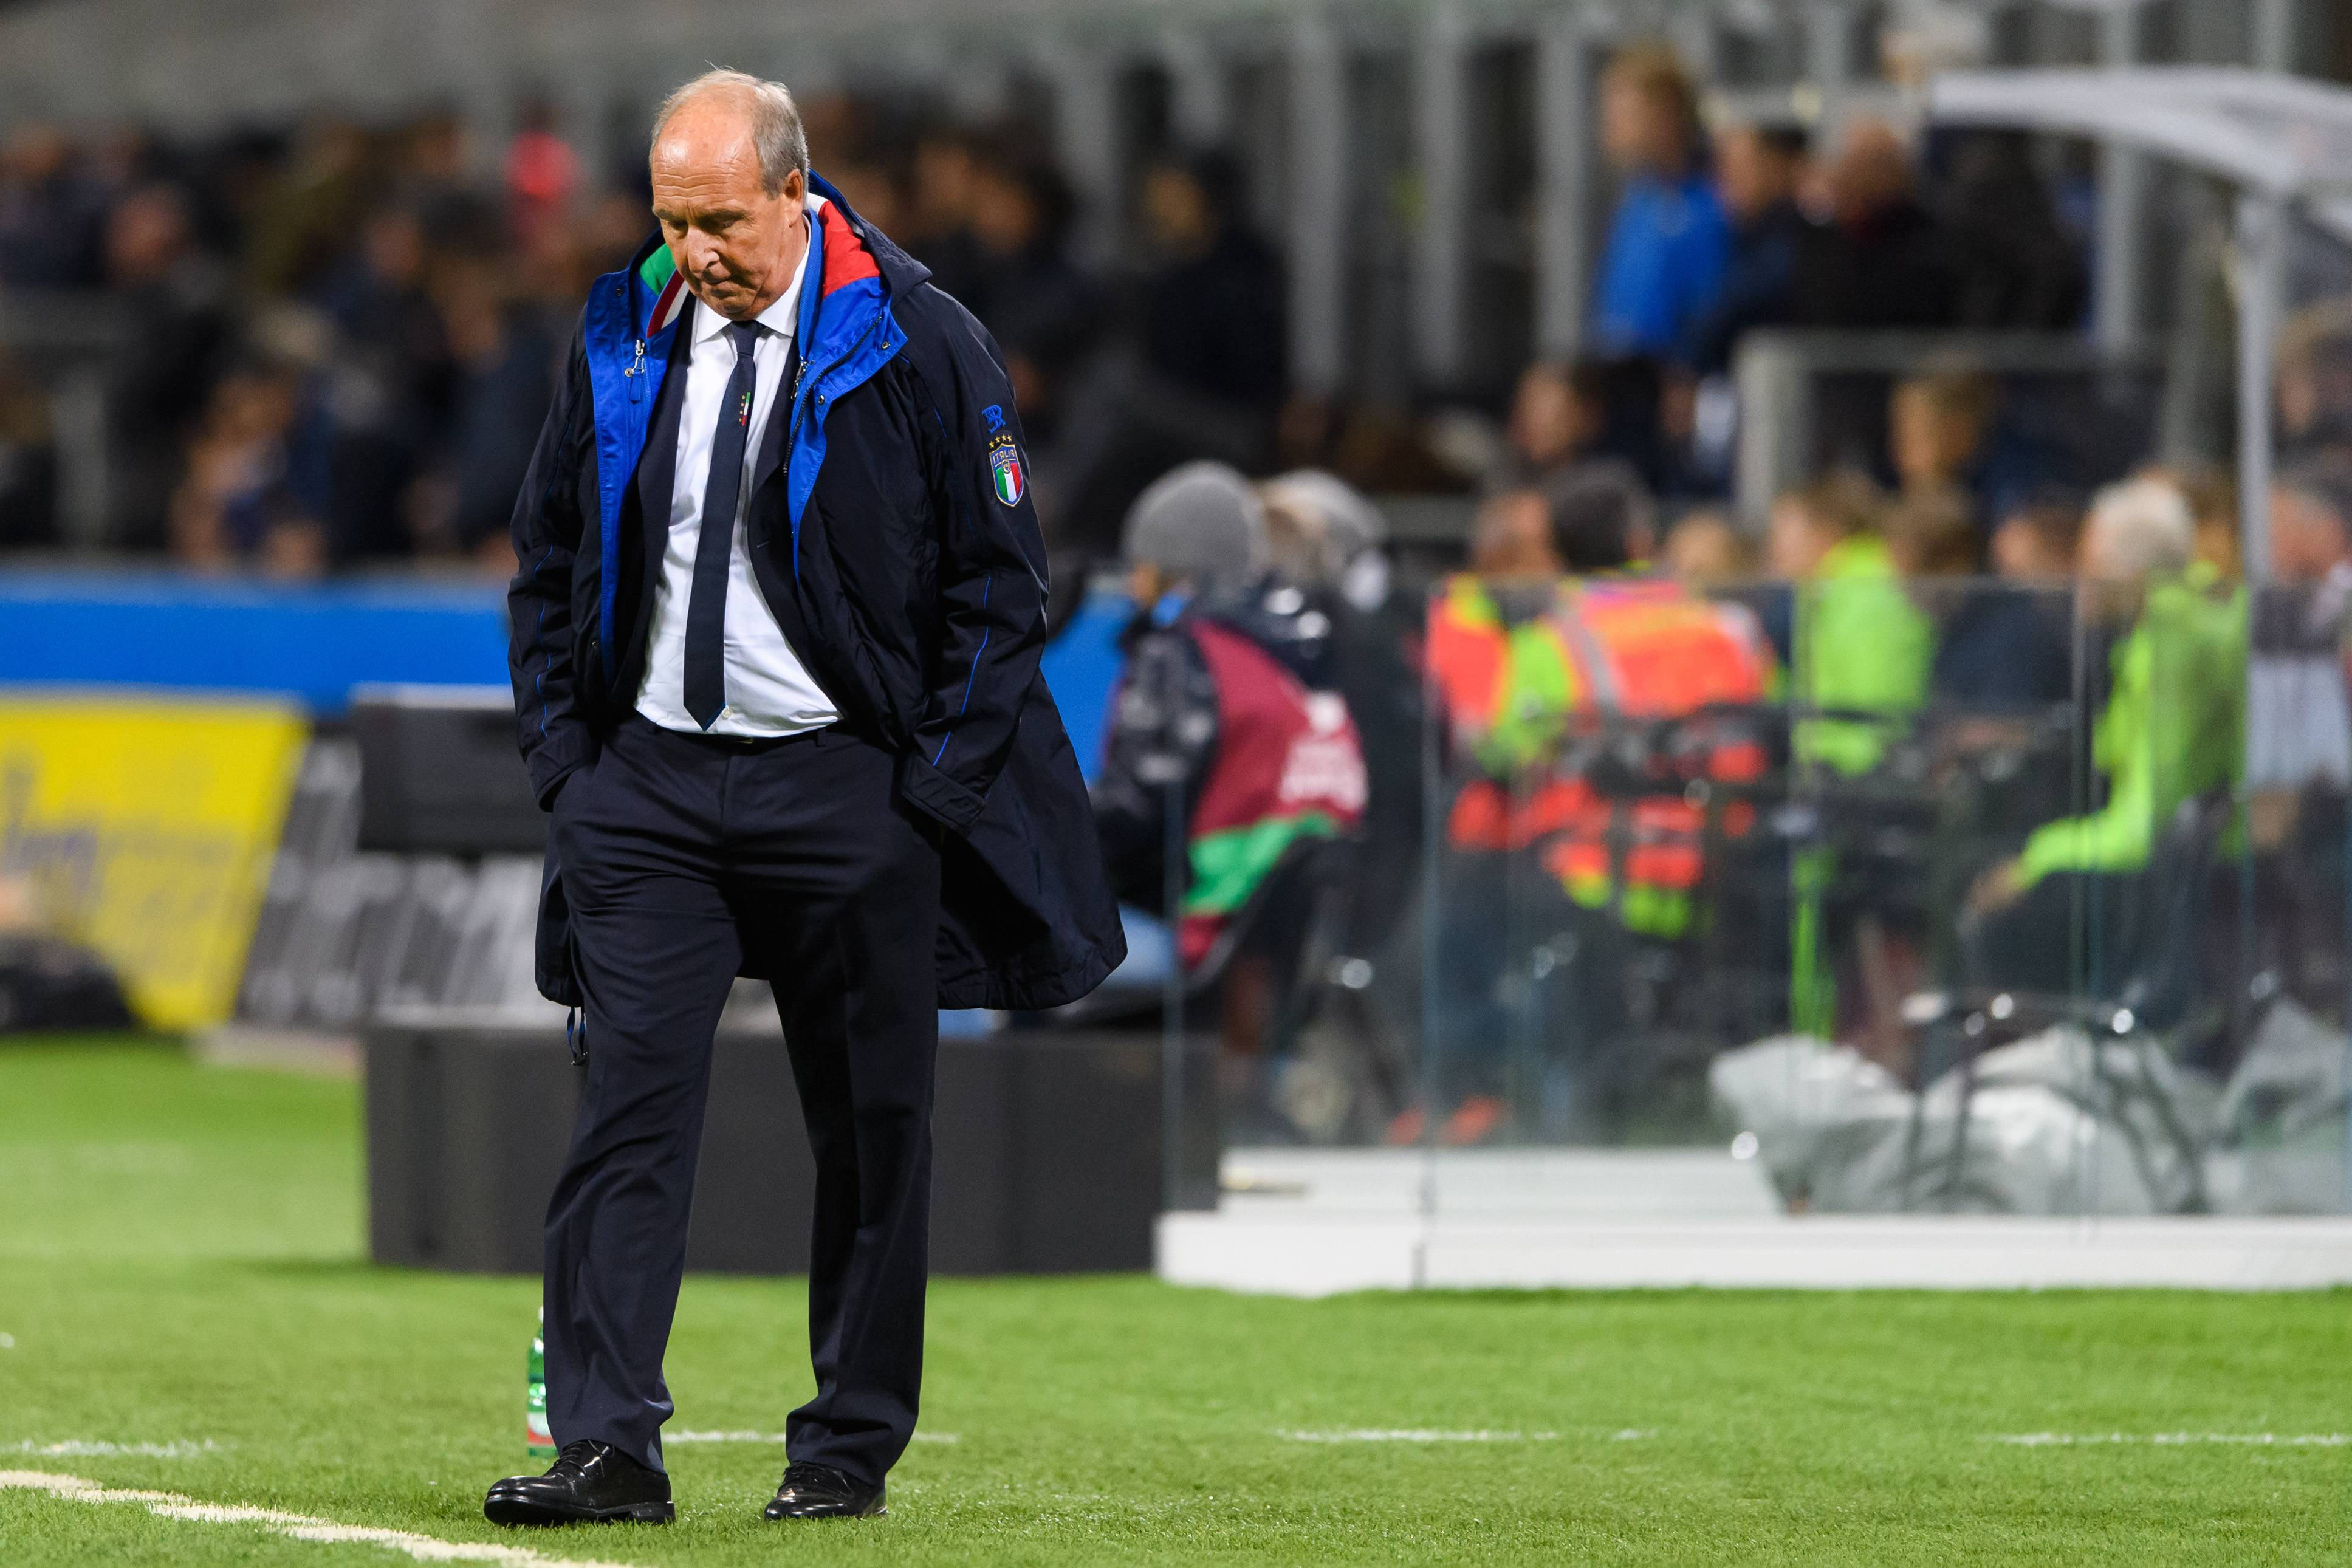 November 13, 2017 - Milano, ITALIEN - 171113 Italiens f?ɬ?rbundskapten Gian Piero Ventura under fotbollsmatchen i VM-kvalets play-off mellan Italien och Sverige den 13 november 2017 i Milano (Credit Image: © Joel Marklund/Bildbyran via ZUMA Wire) PILKA NOZNA ELIMINACJE MISTRZOSTW SWIATA BARAZE BARAZ WLOCHY - SZWECJA FOT. ZUMA/NEWSPIX.PL POLAND ONLY! --- Newspix.pl *** Local Caption *** www.newspix.pl mail us: info@newspix.pl call us: 0048 022 23 22 222 --- Polish Picture Agency by Ringier Axel Springer Poland